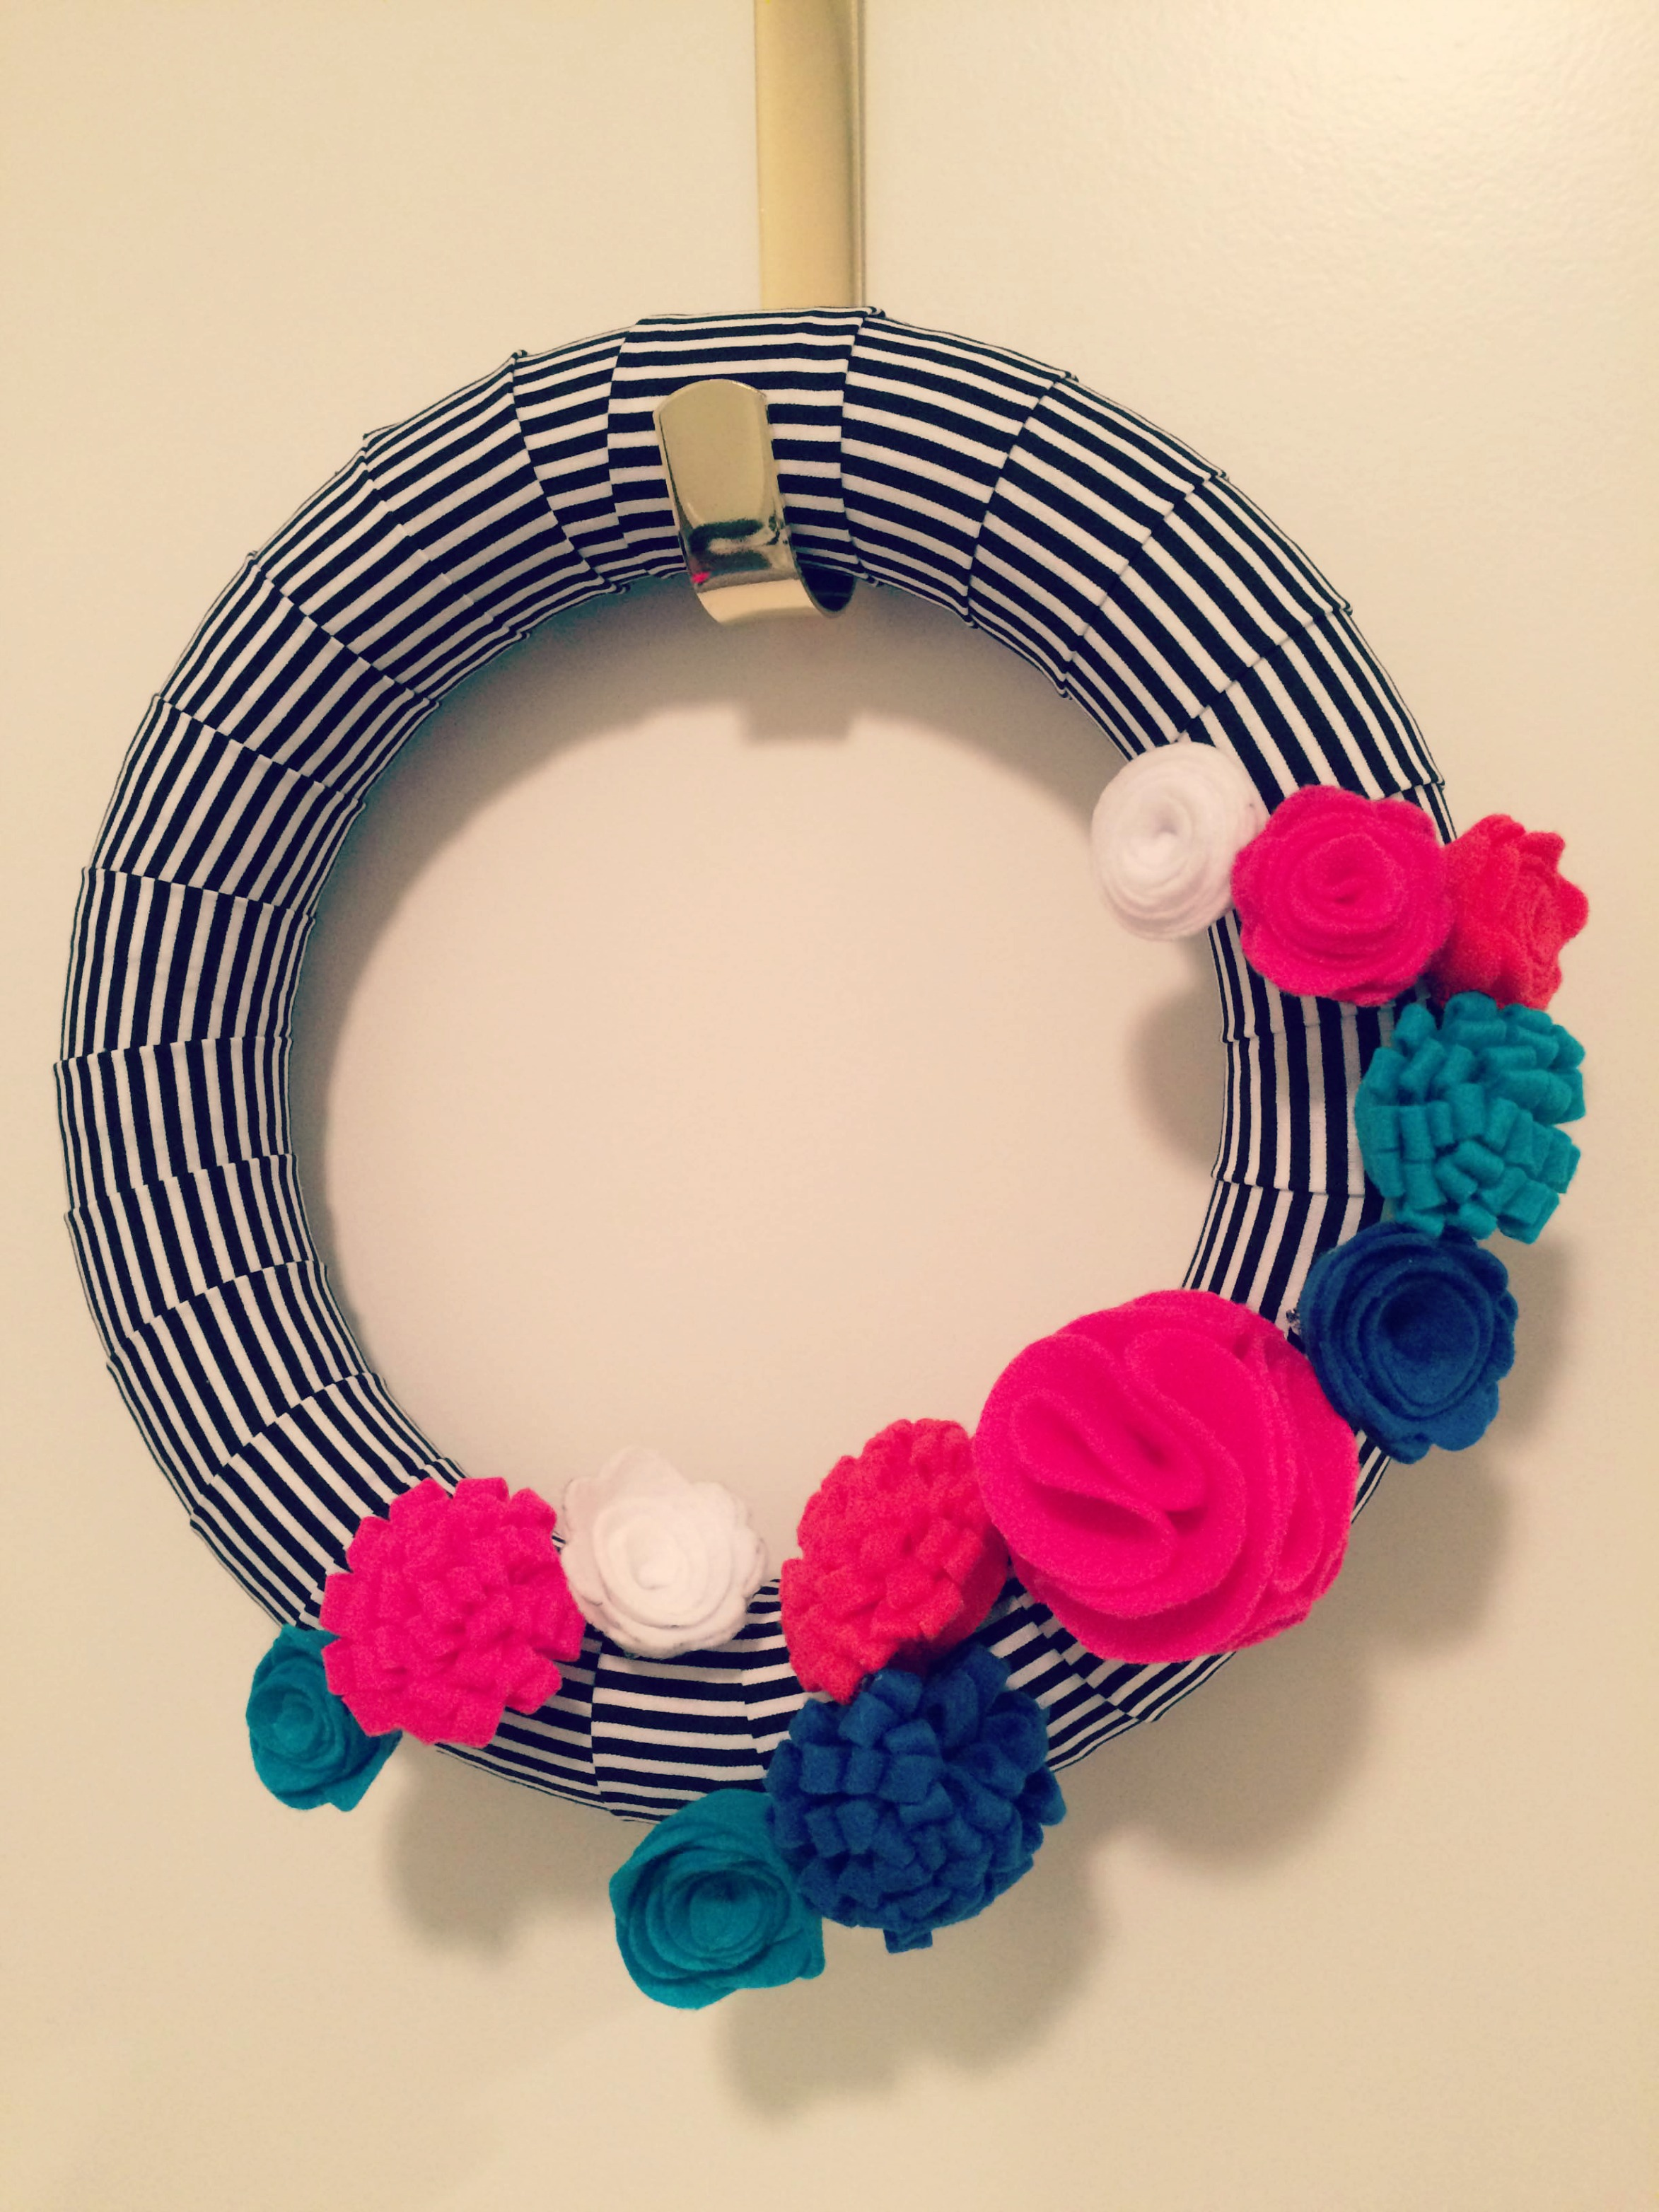 {My DIY Felt Flower Wreath - Adjusting Layout with Pin Backs}